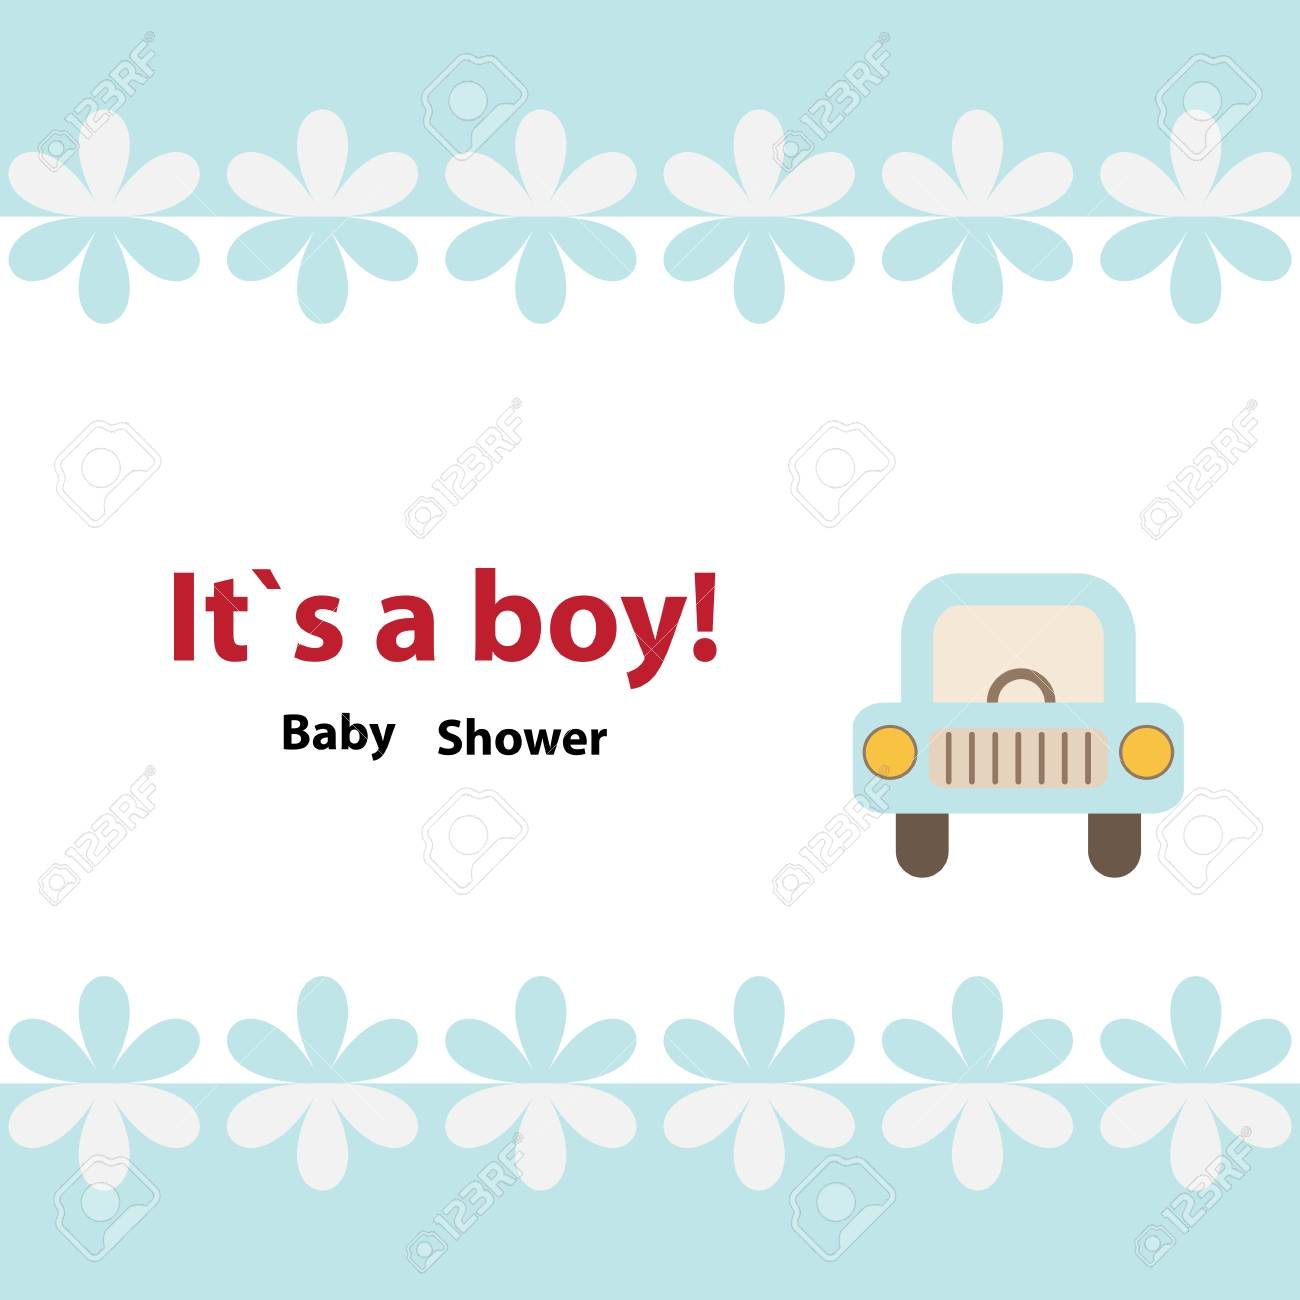 Baby Shower Invitation Card Design With Toy Car And The Border